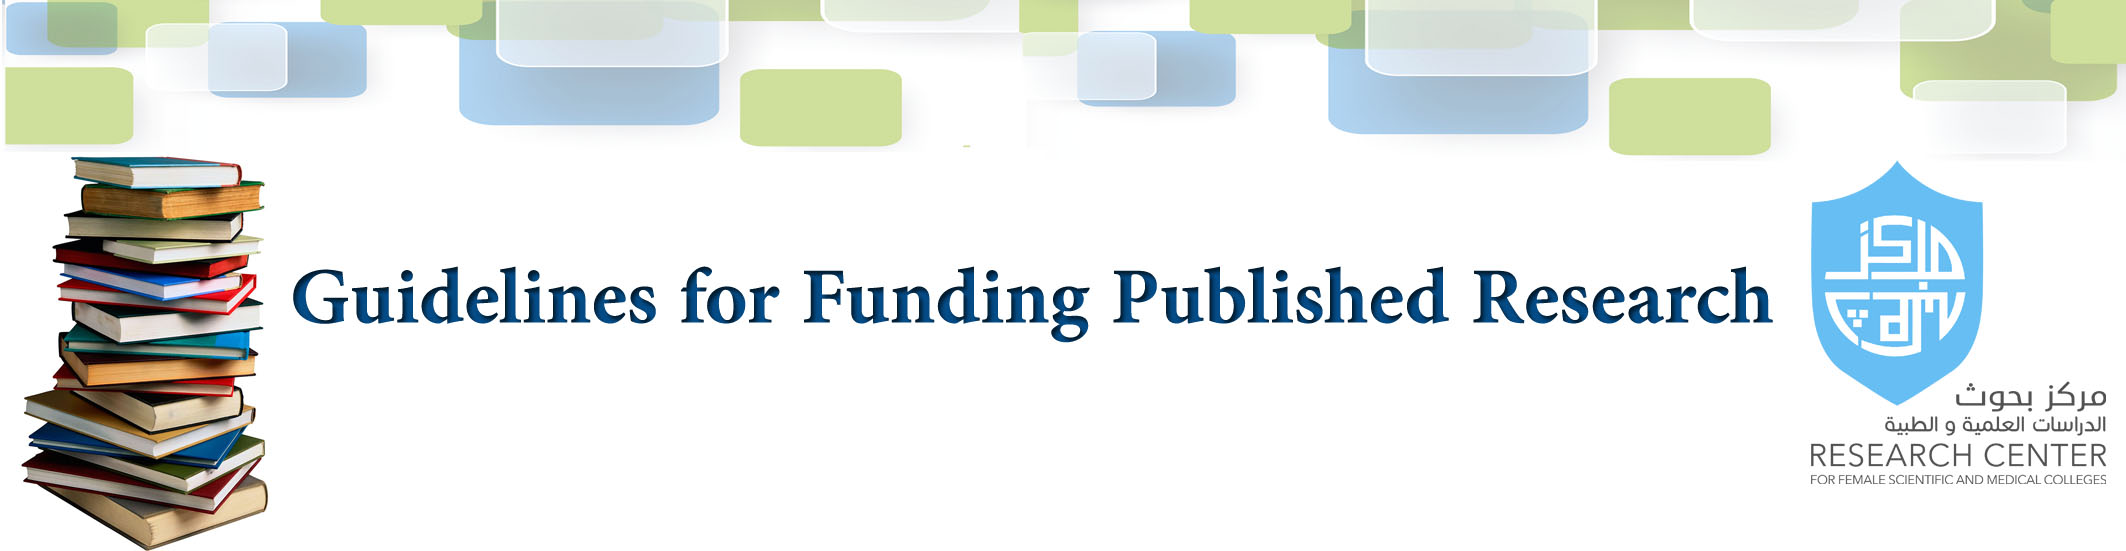 Guidelines for Funding Published Research - Guidelines for Funding Published Research